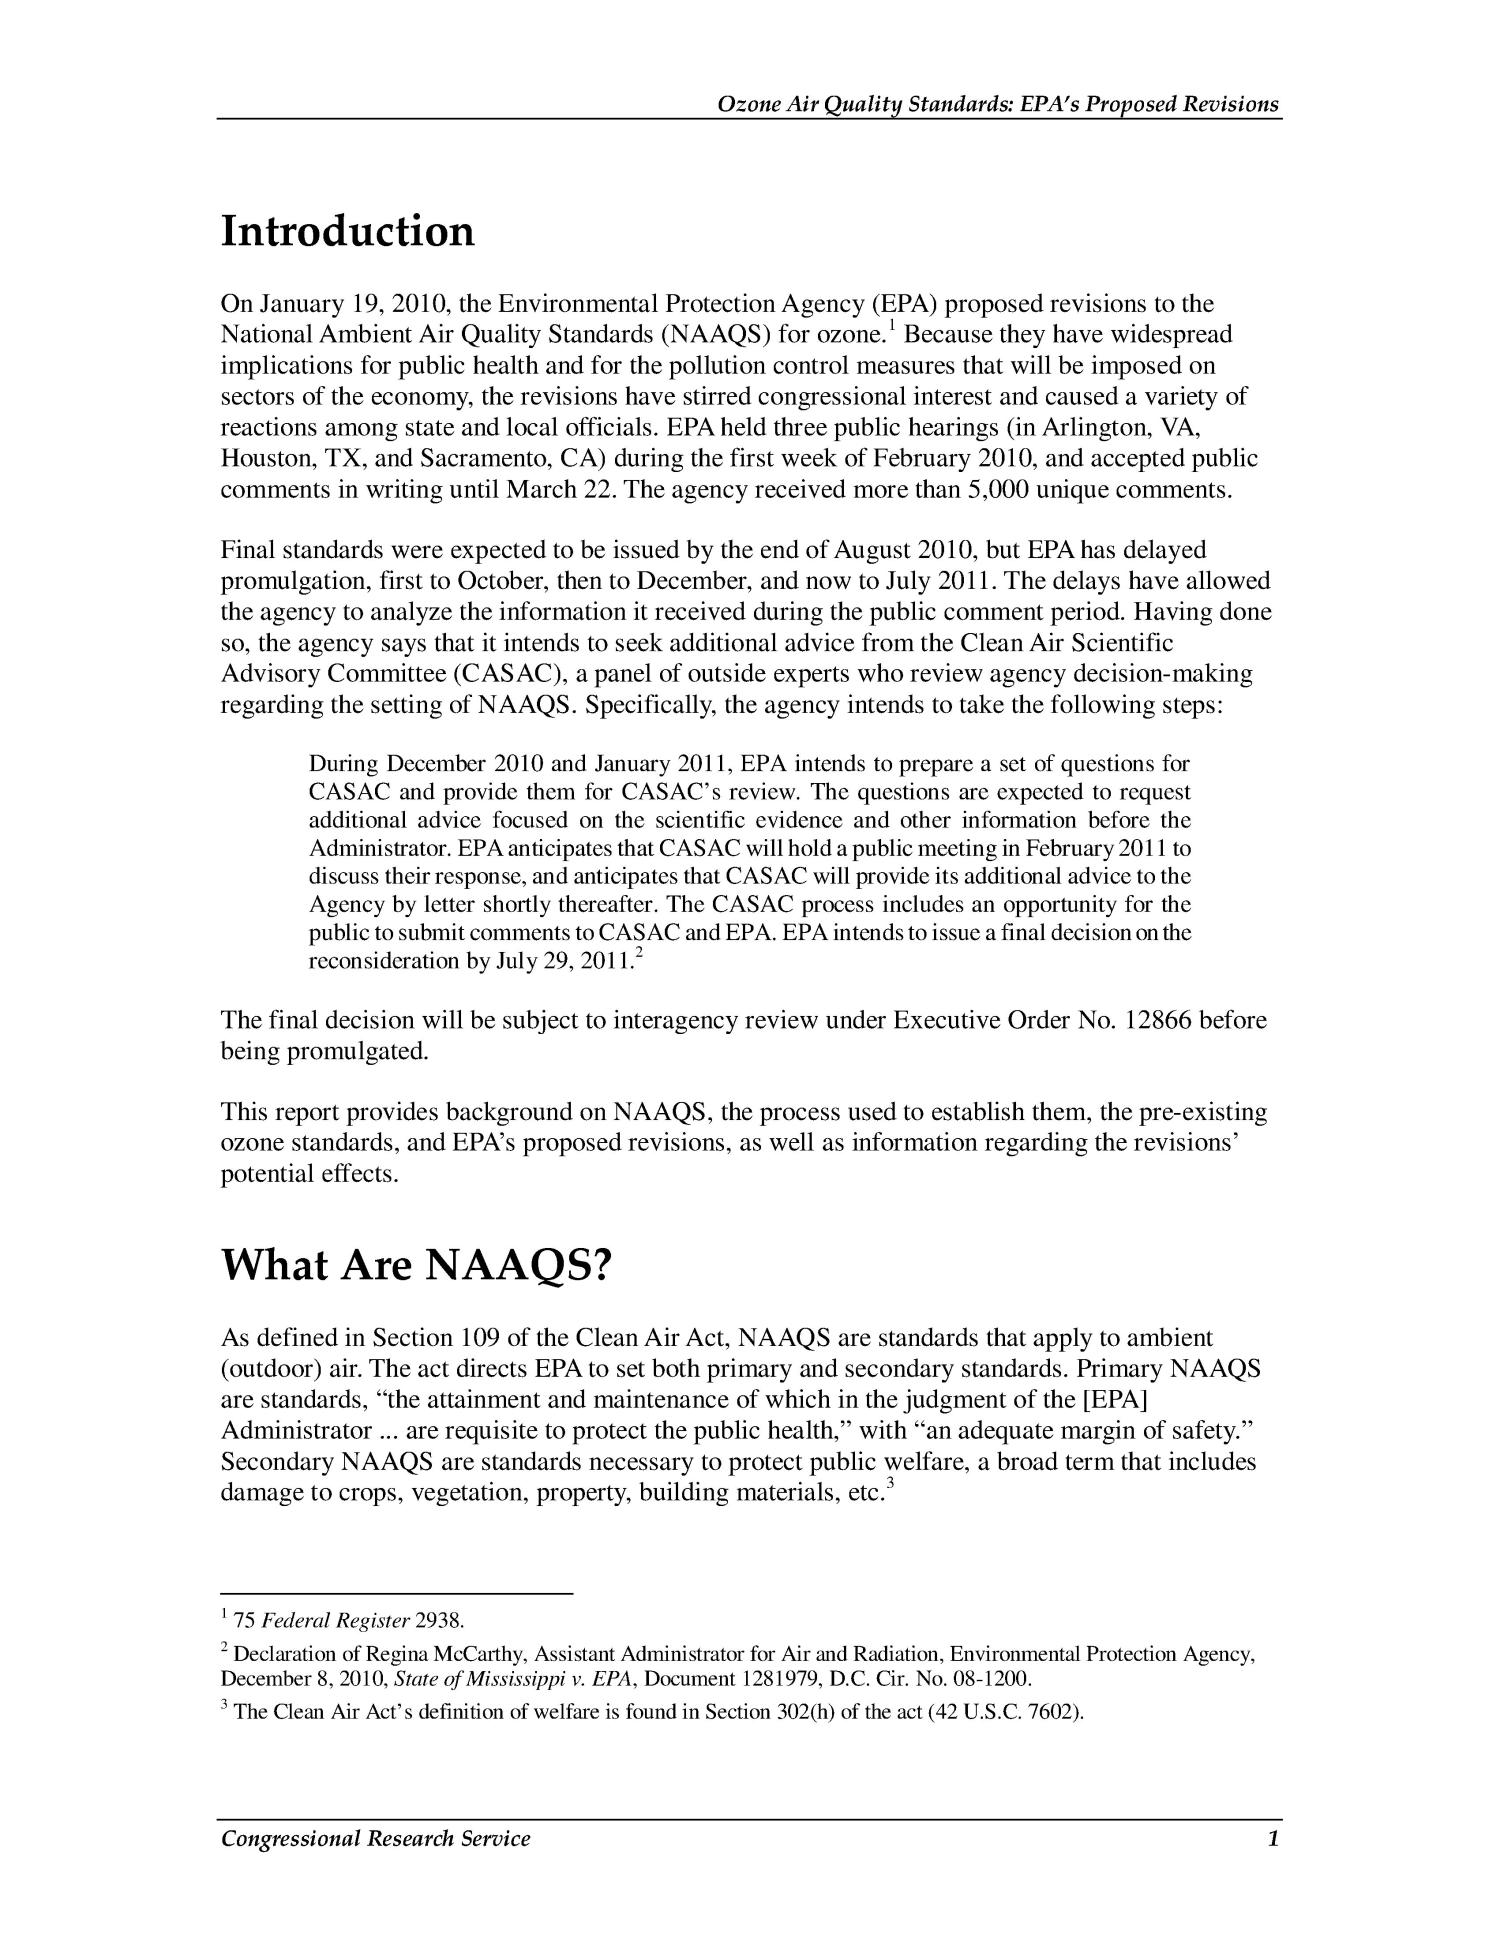 Ozone Air Quality Standards: EPA's Proposed Revisions                                                                                                      [Sequence #]: 4 of 15